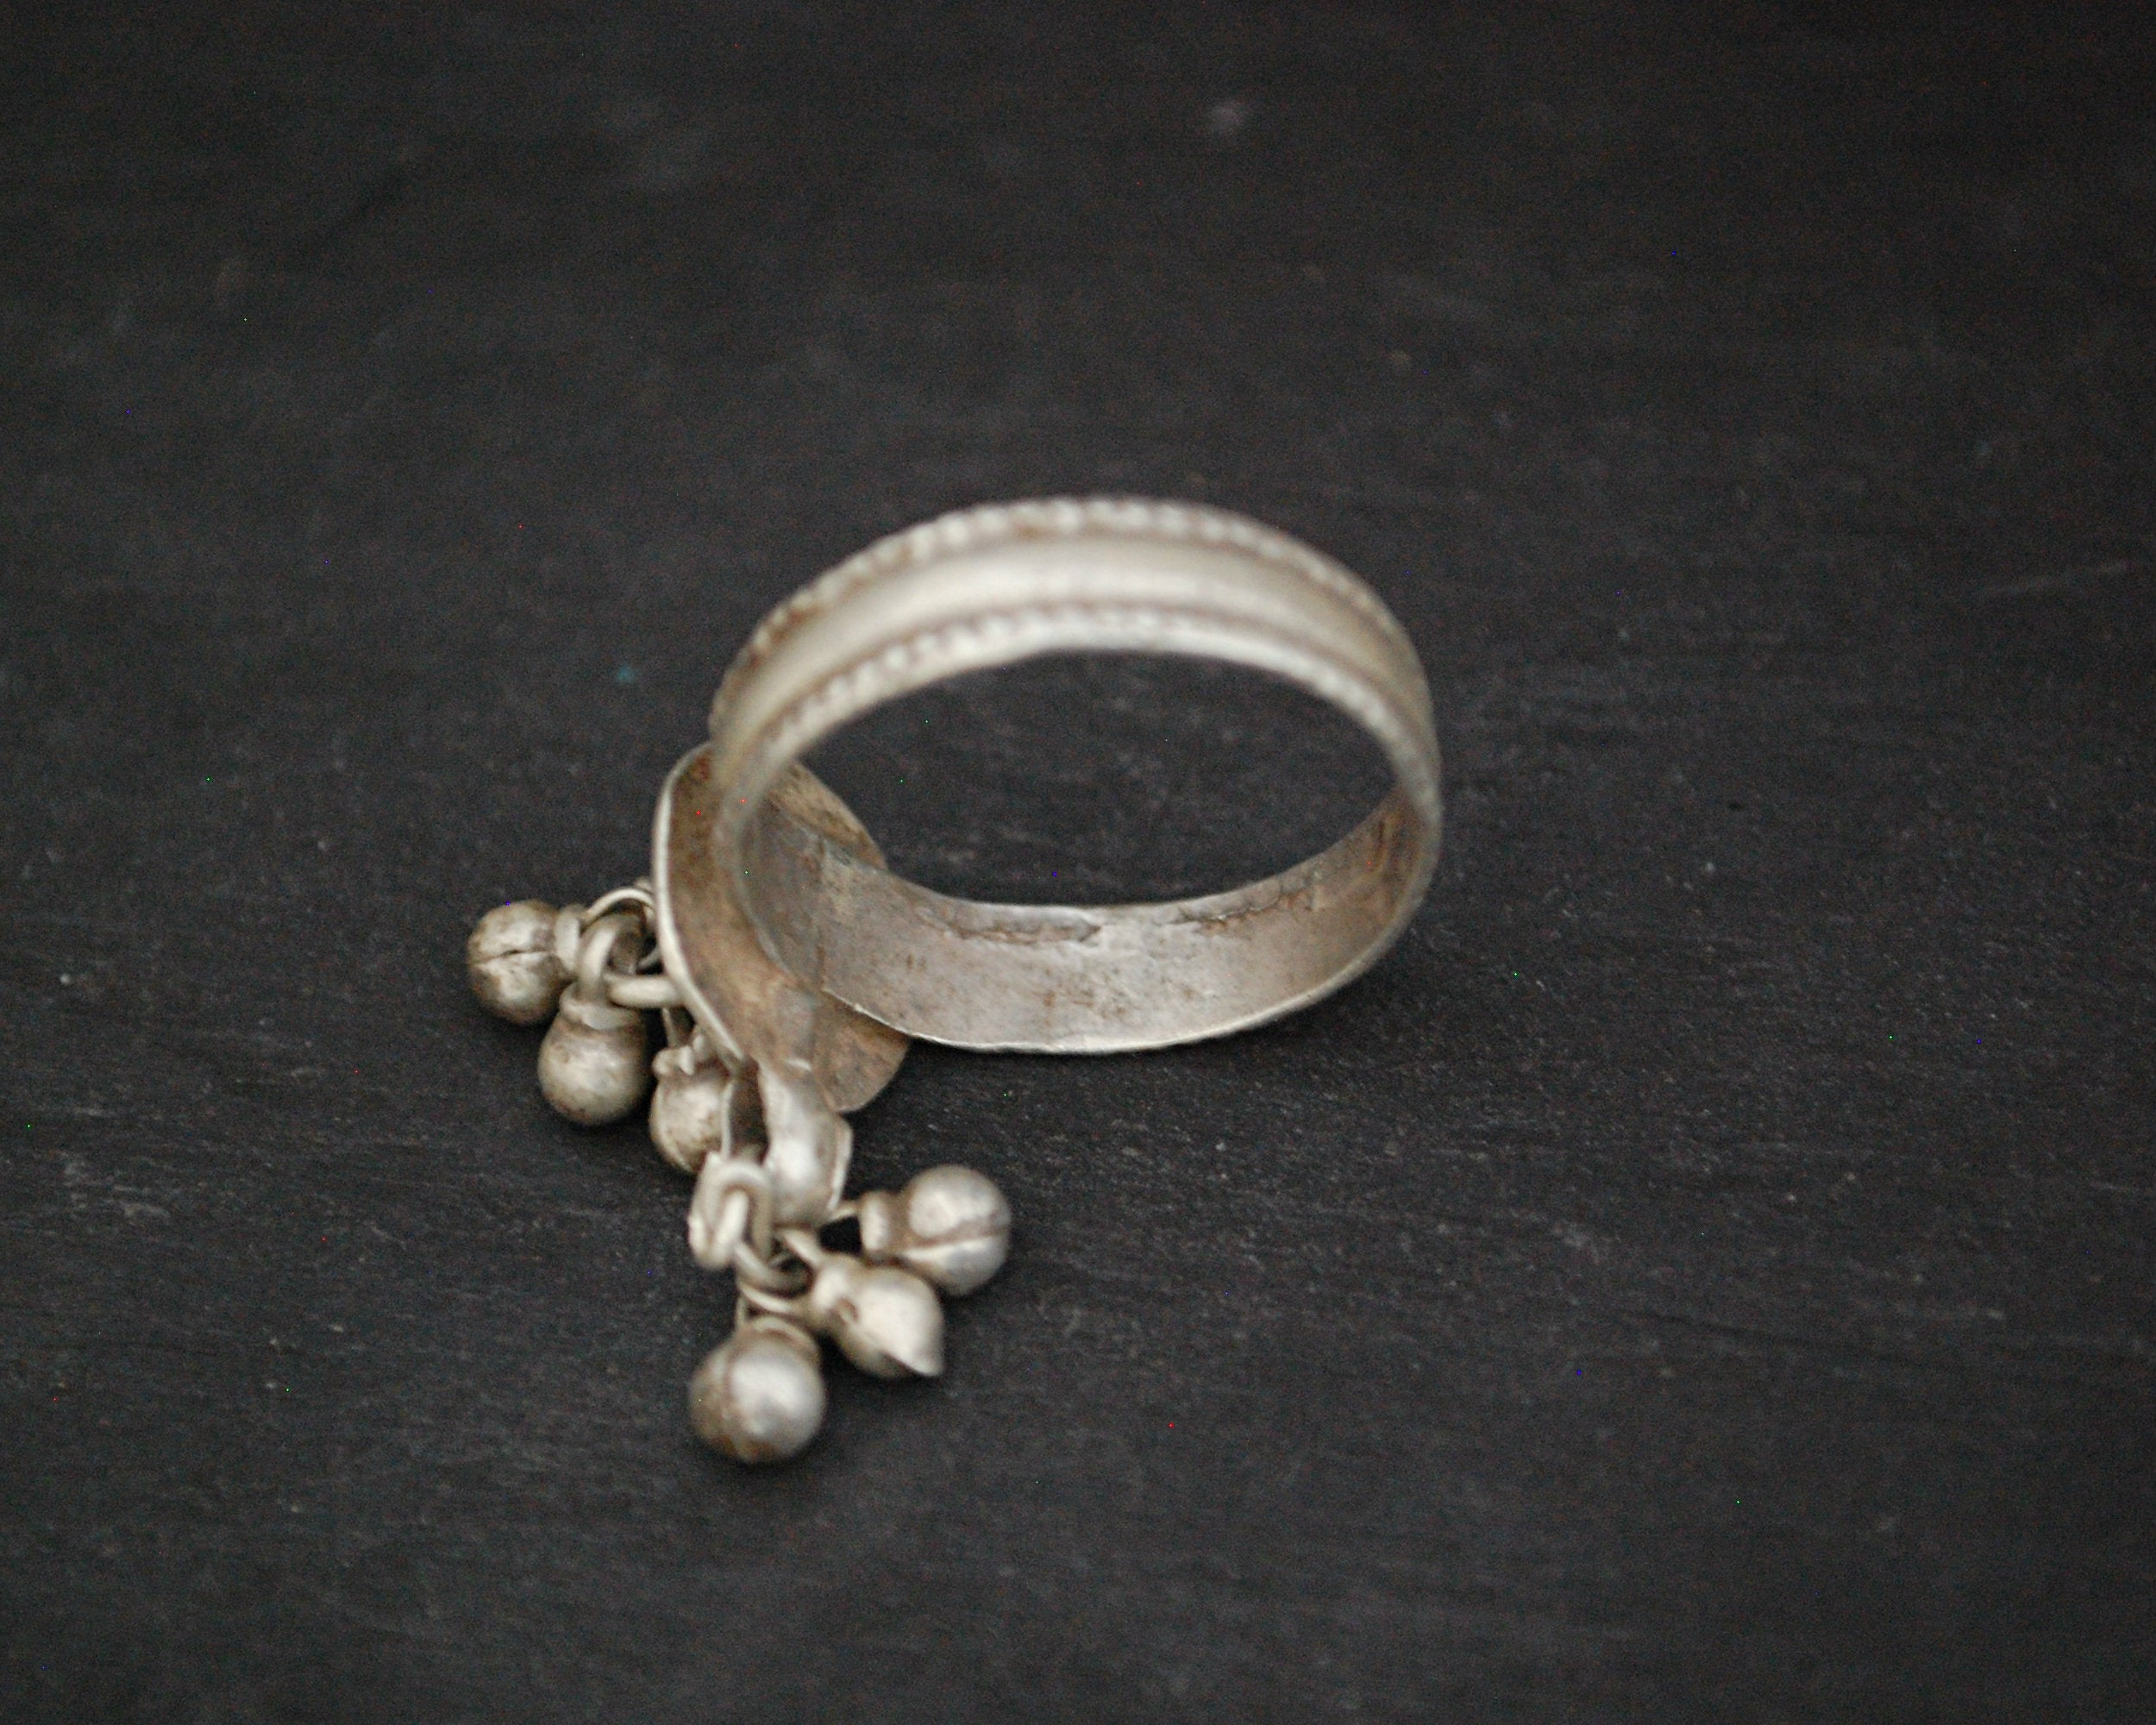 Old Rajasthani Silver Ring with Bells - Size 12.25